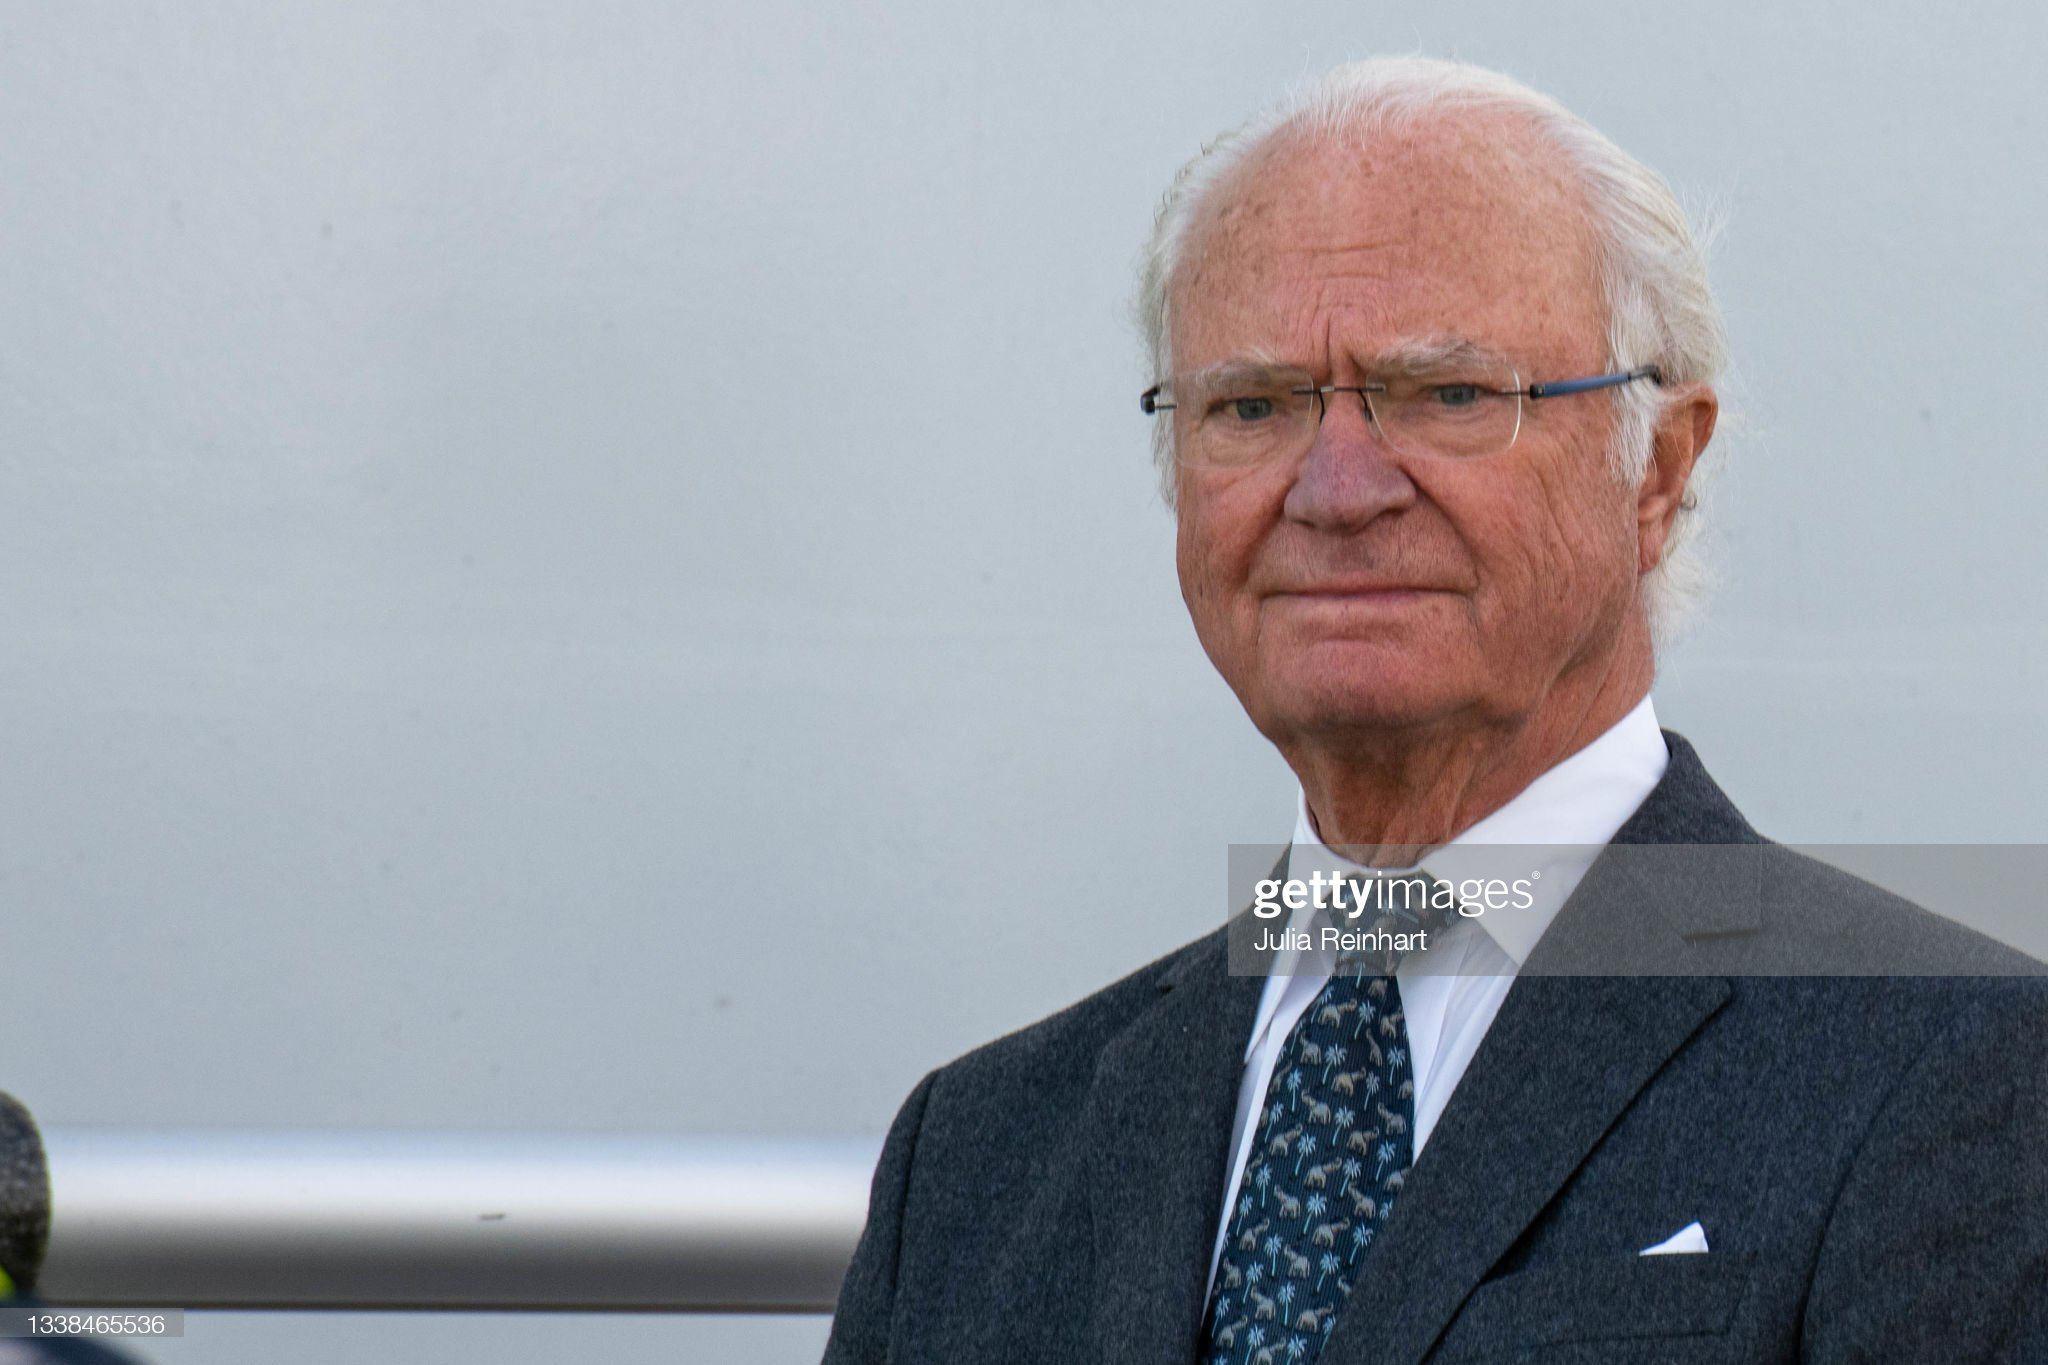 King Carl Gustaf Of Sweden Visits The Hisingsbron Project In Gothenburg : News Photo